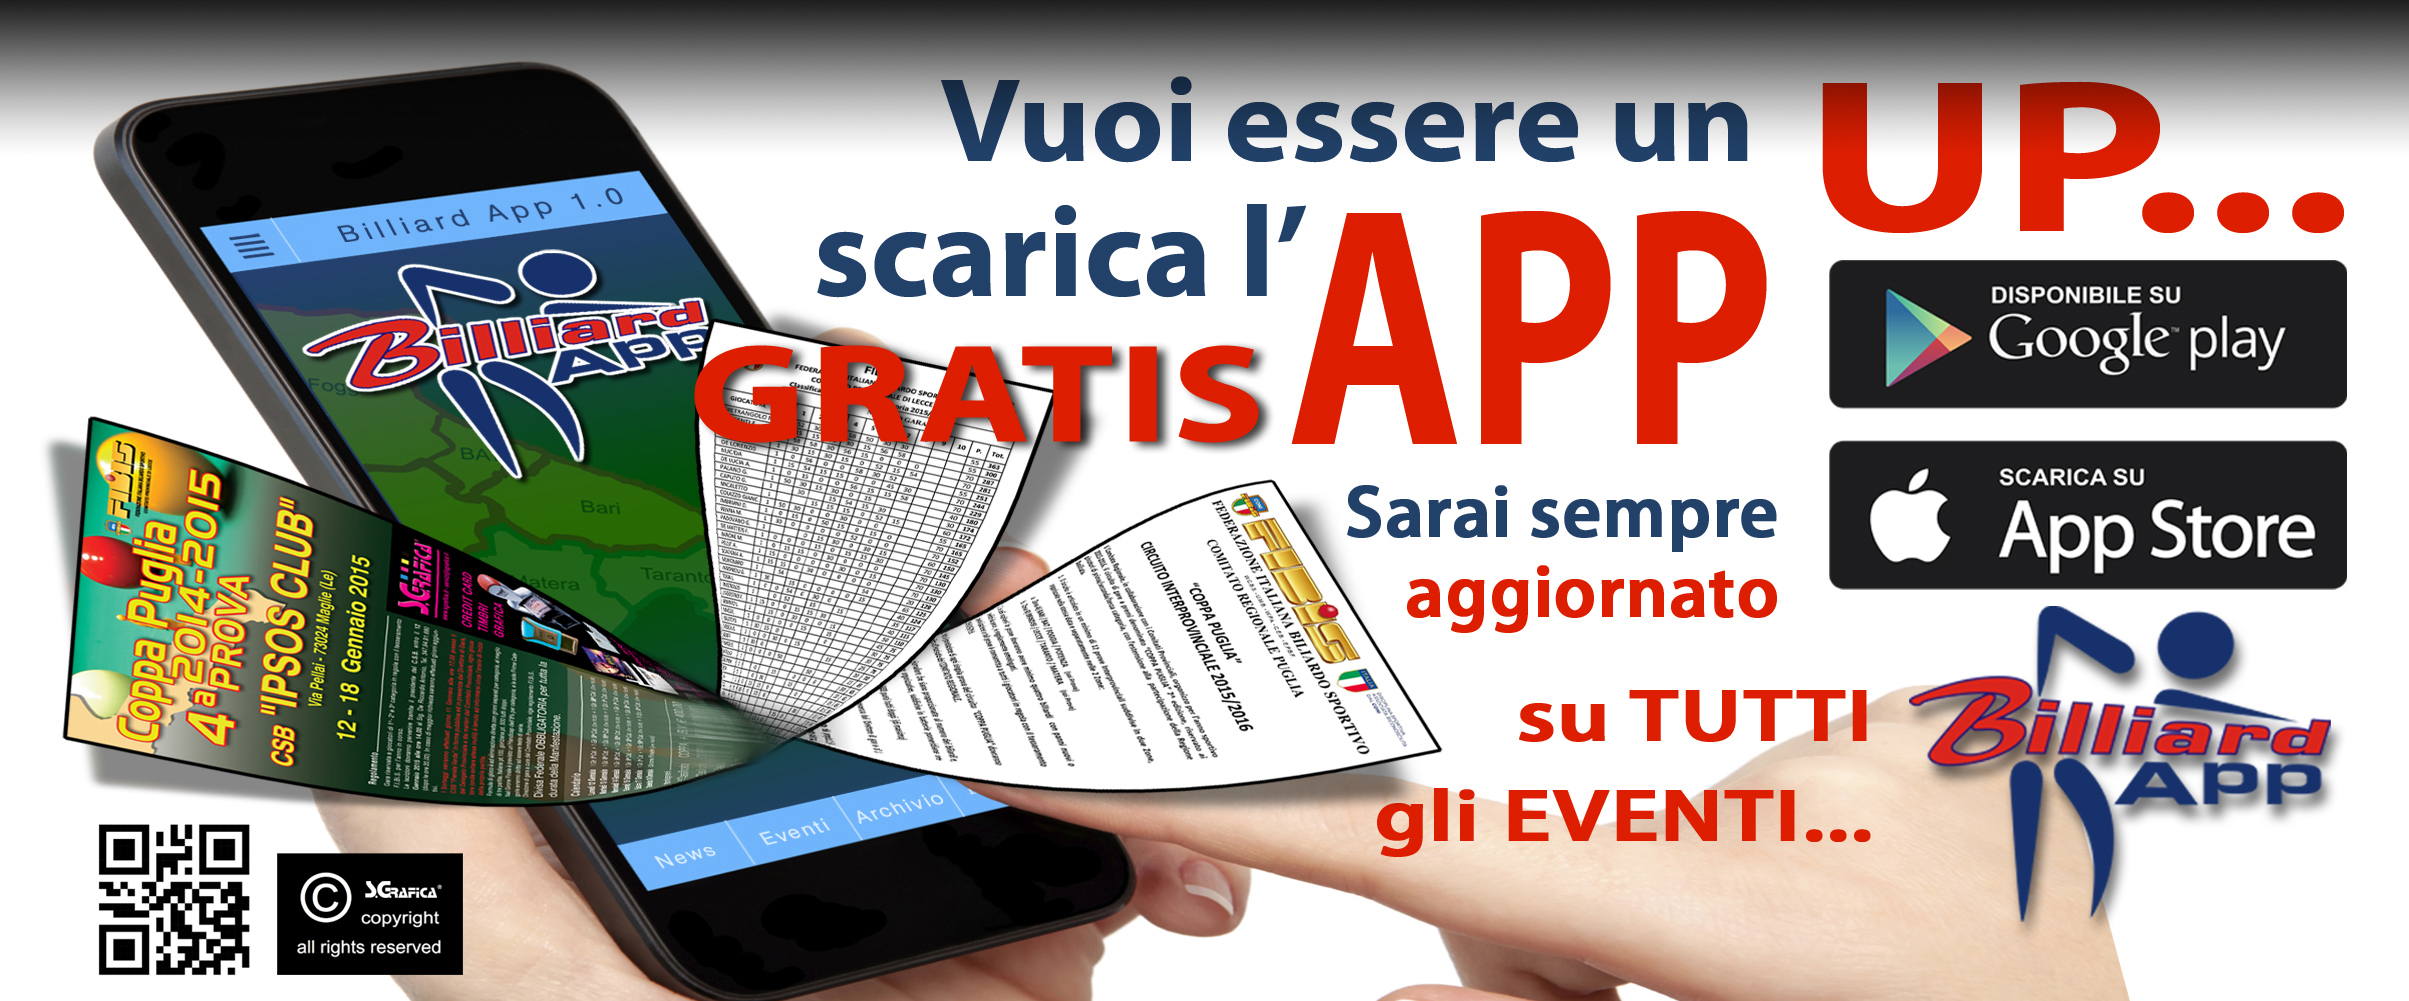 BilliardApp Carusell